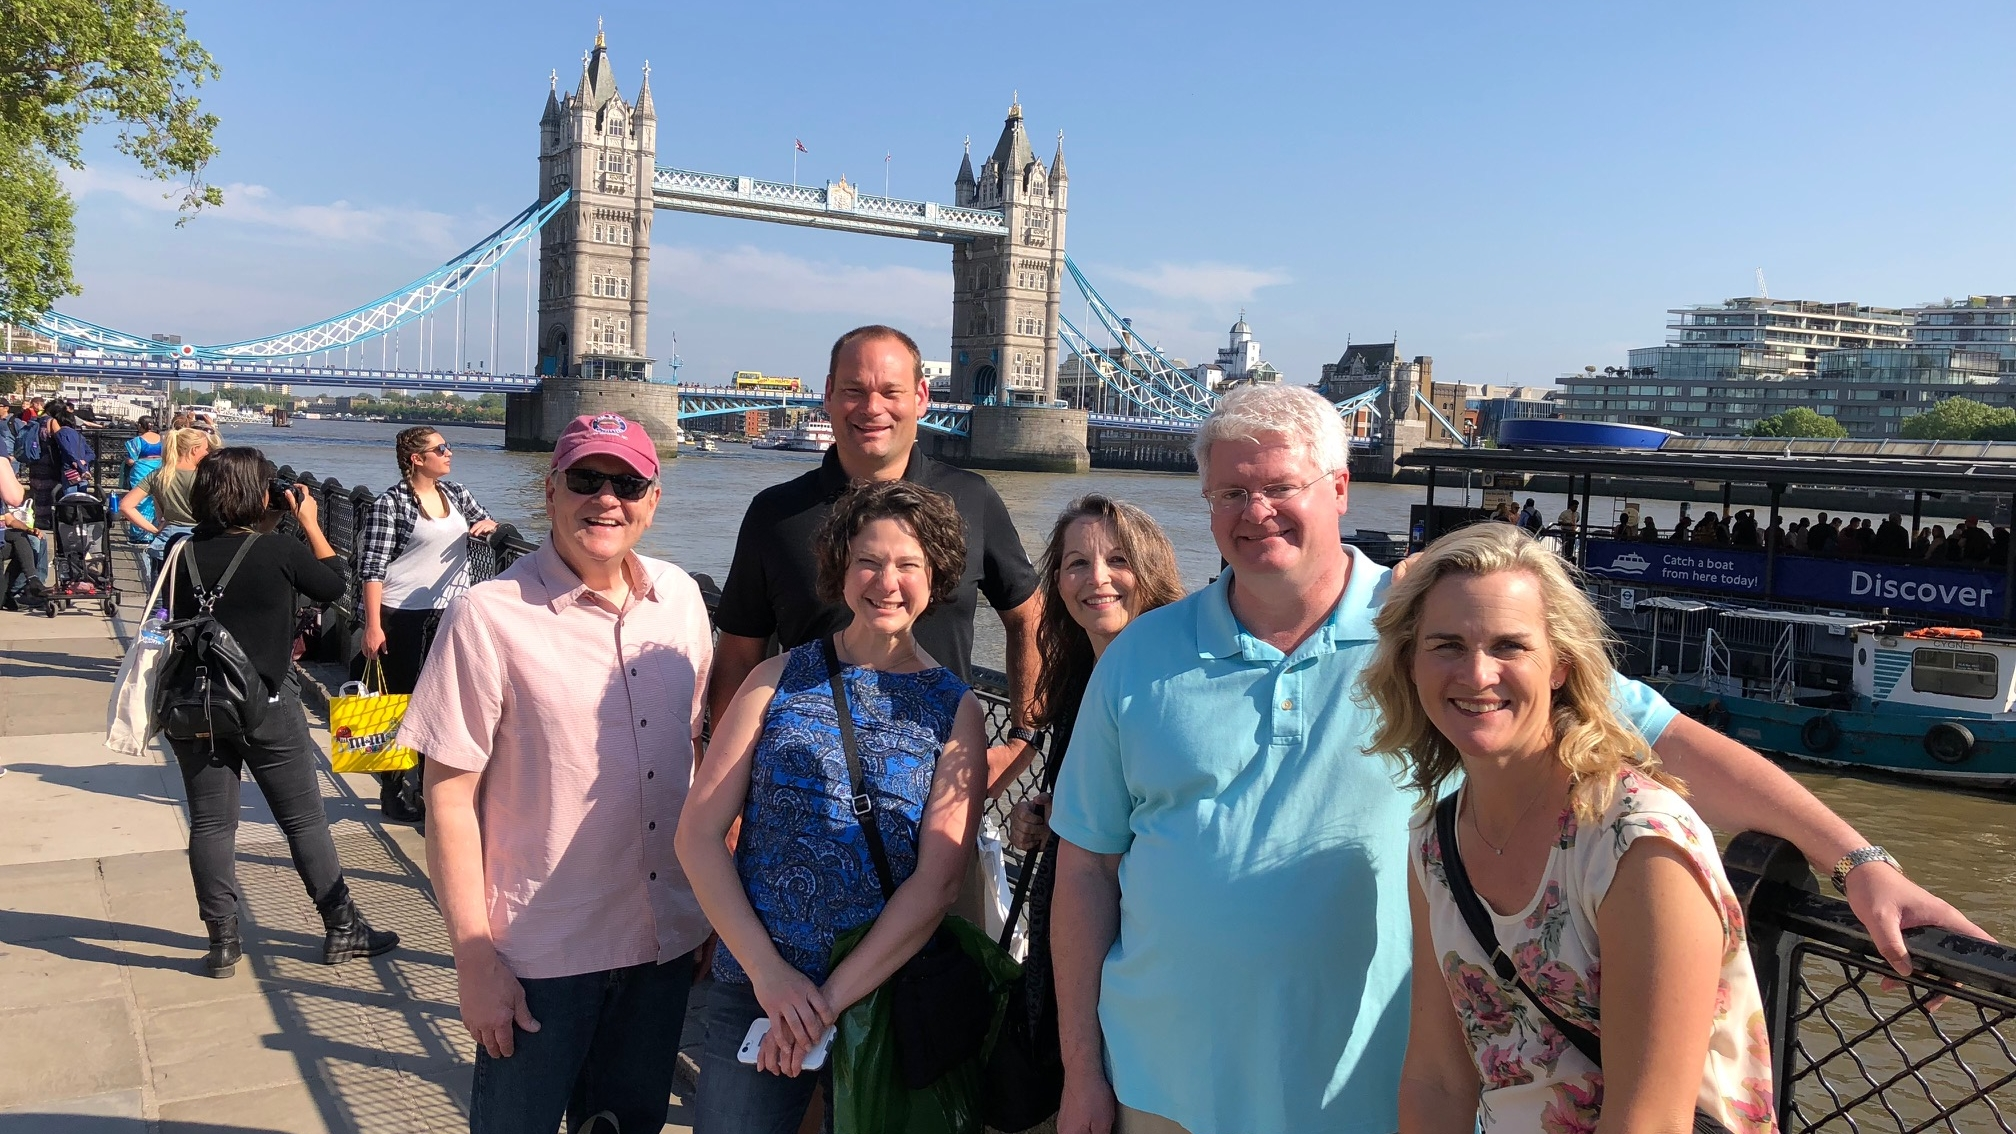 Team (minus Sasan, the photographer) in front of the Tower Bridge